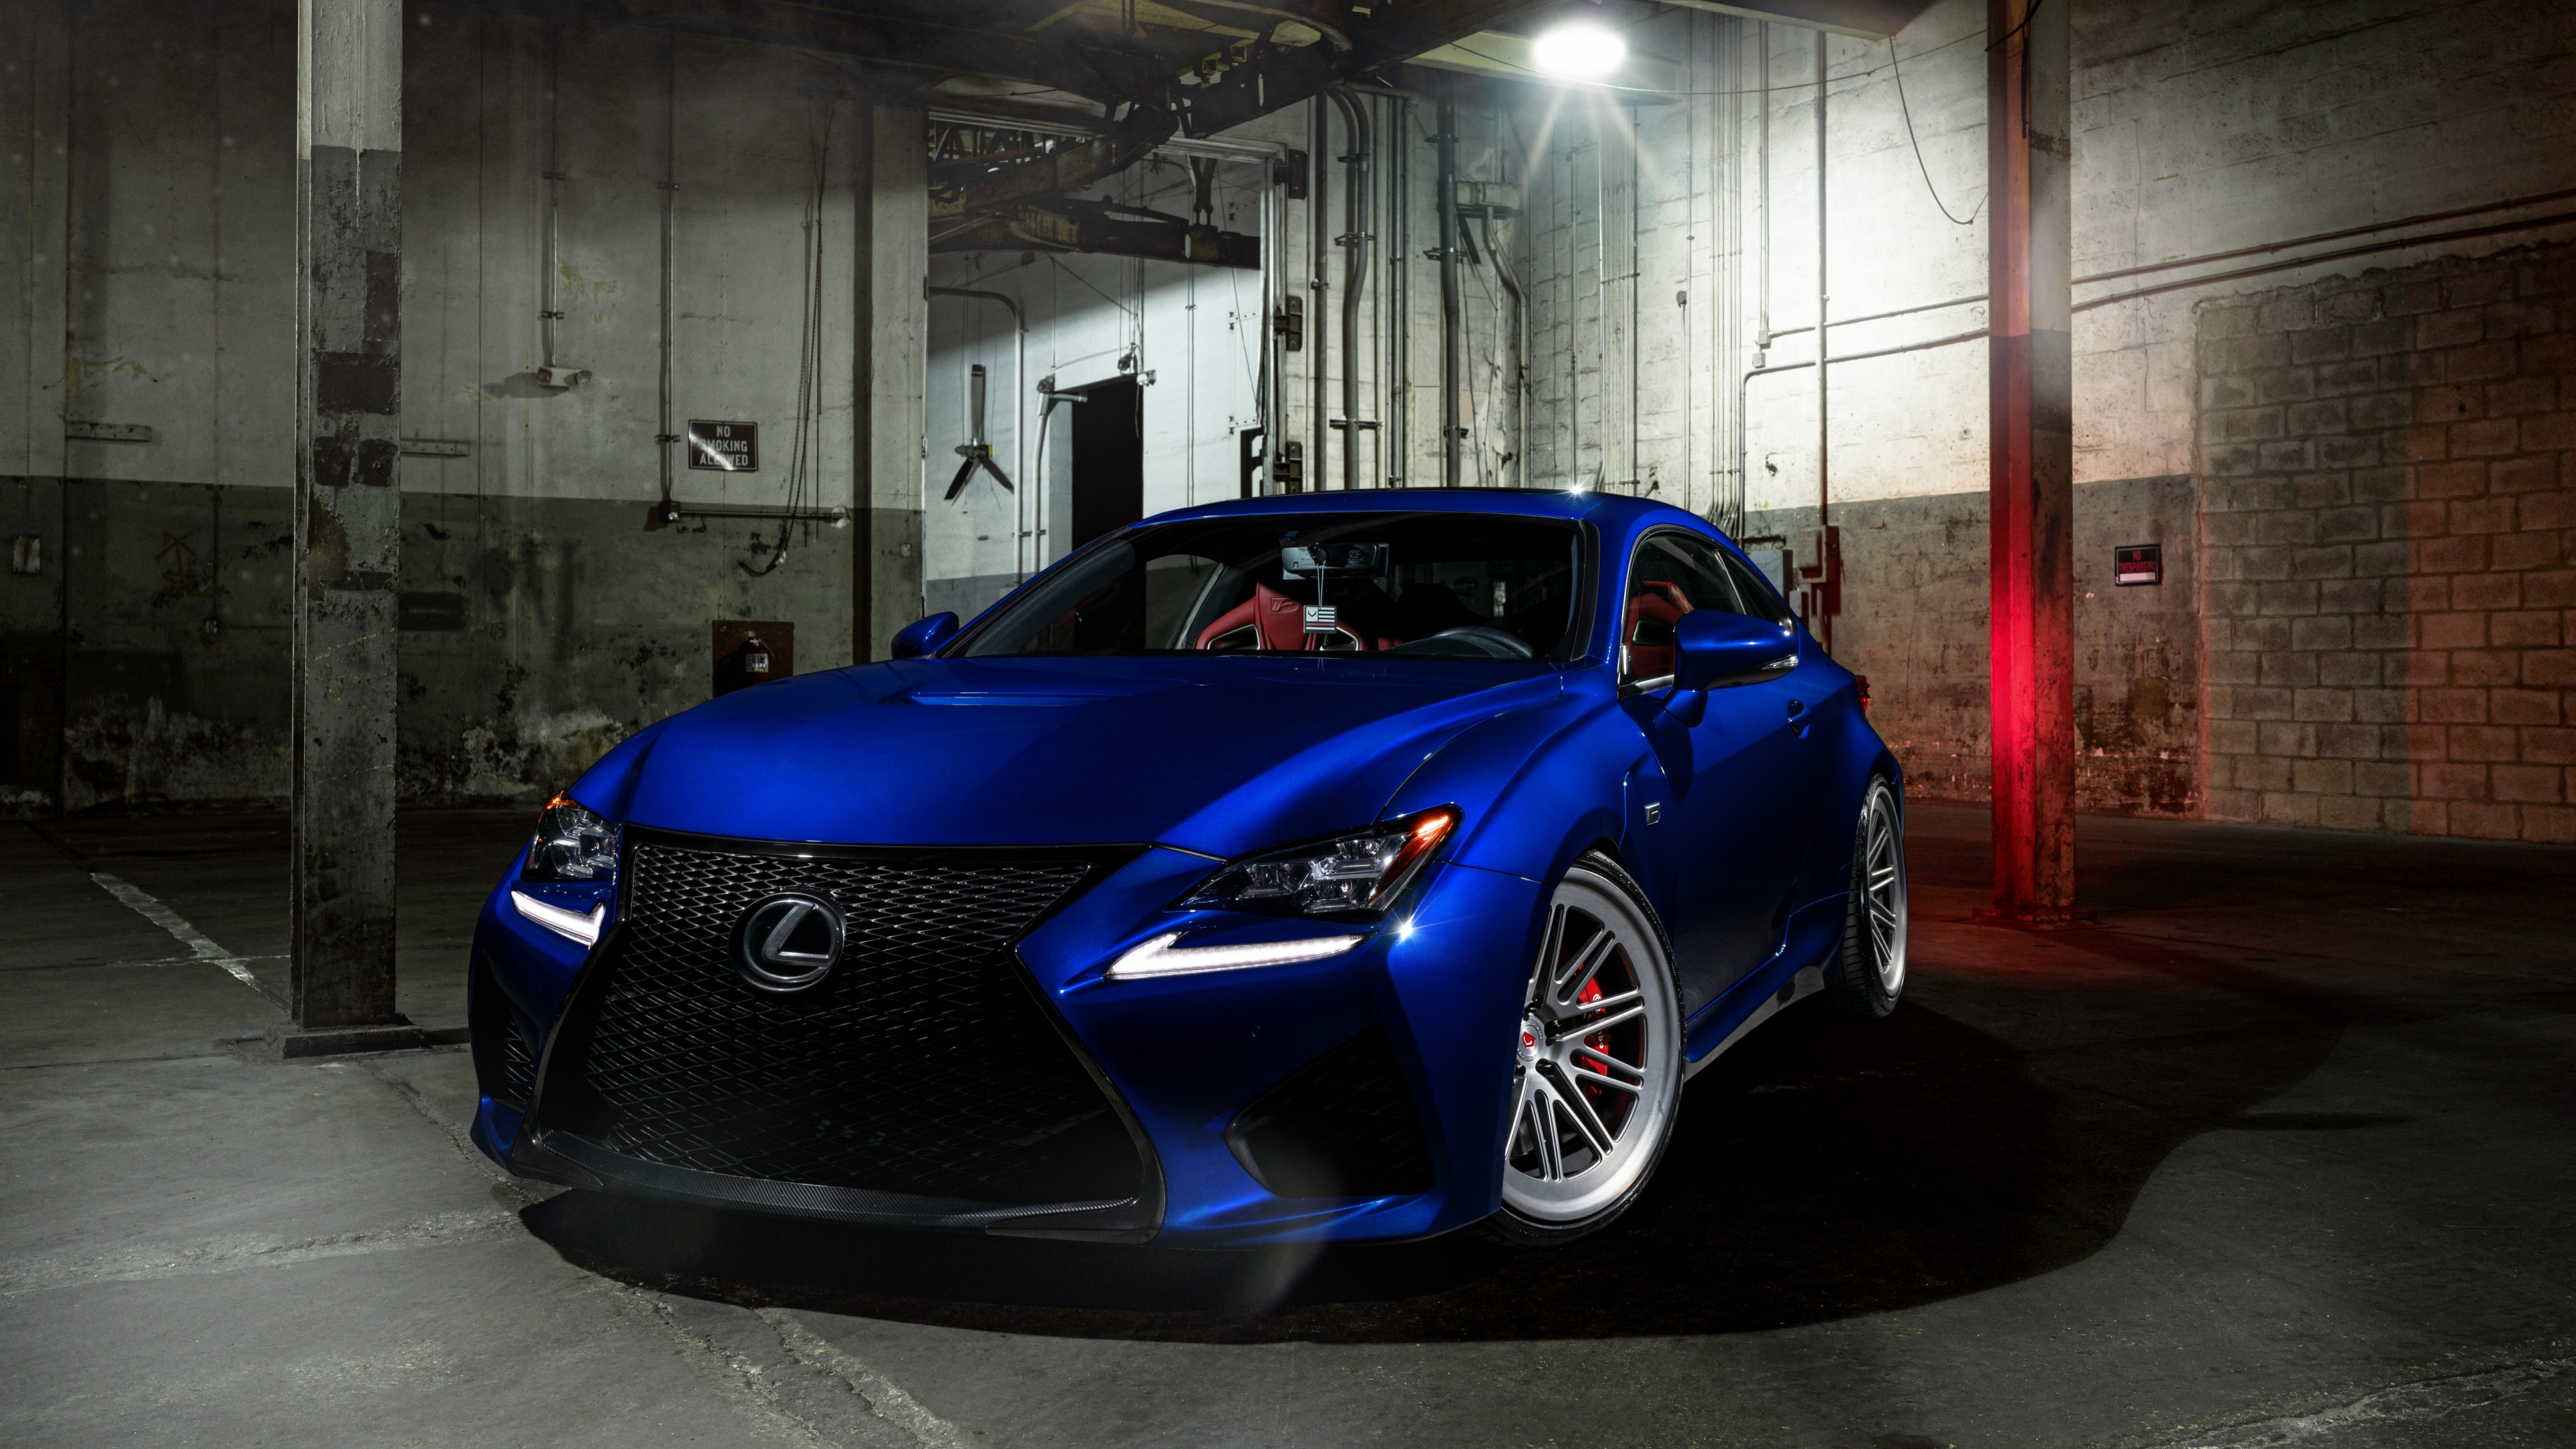 2016 Vossen Blue Lexus RC F Wallpaper | HD Car Wallpapers ...